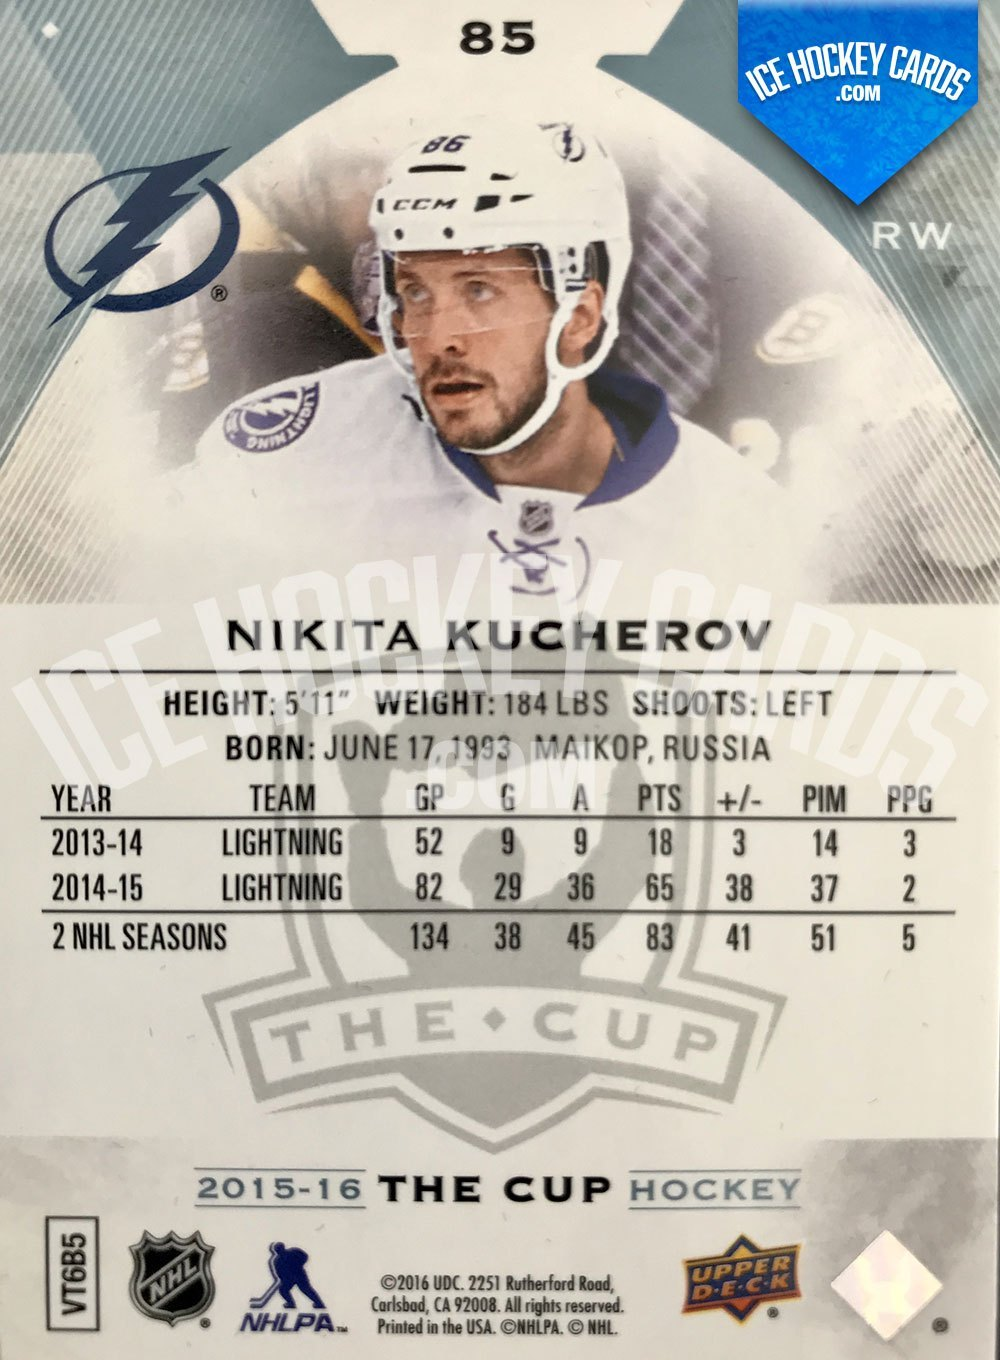 Upper Deck - The Cup 2015-16 - Nikita Kucherov Base Card back